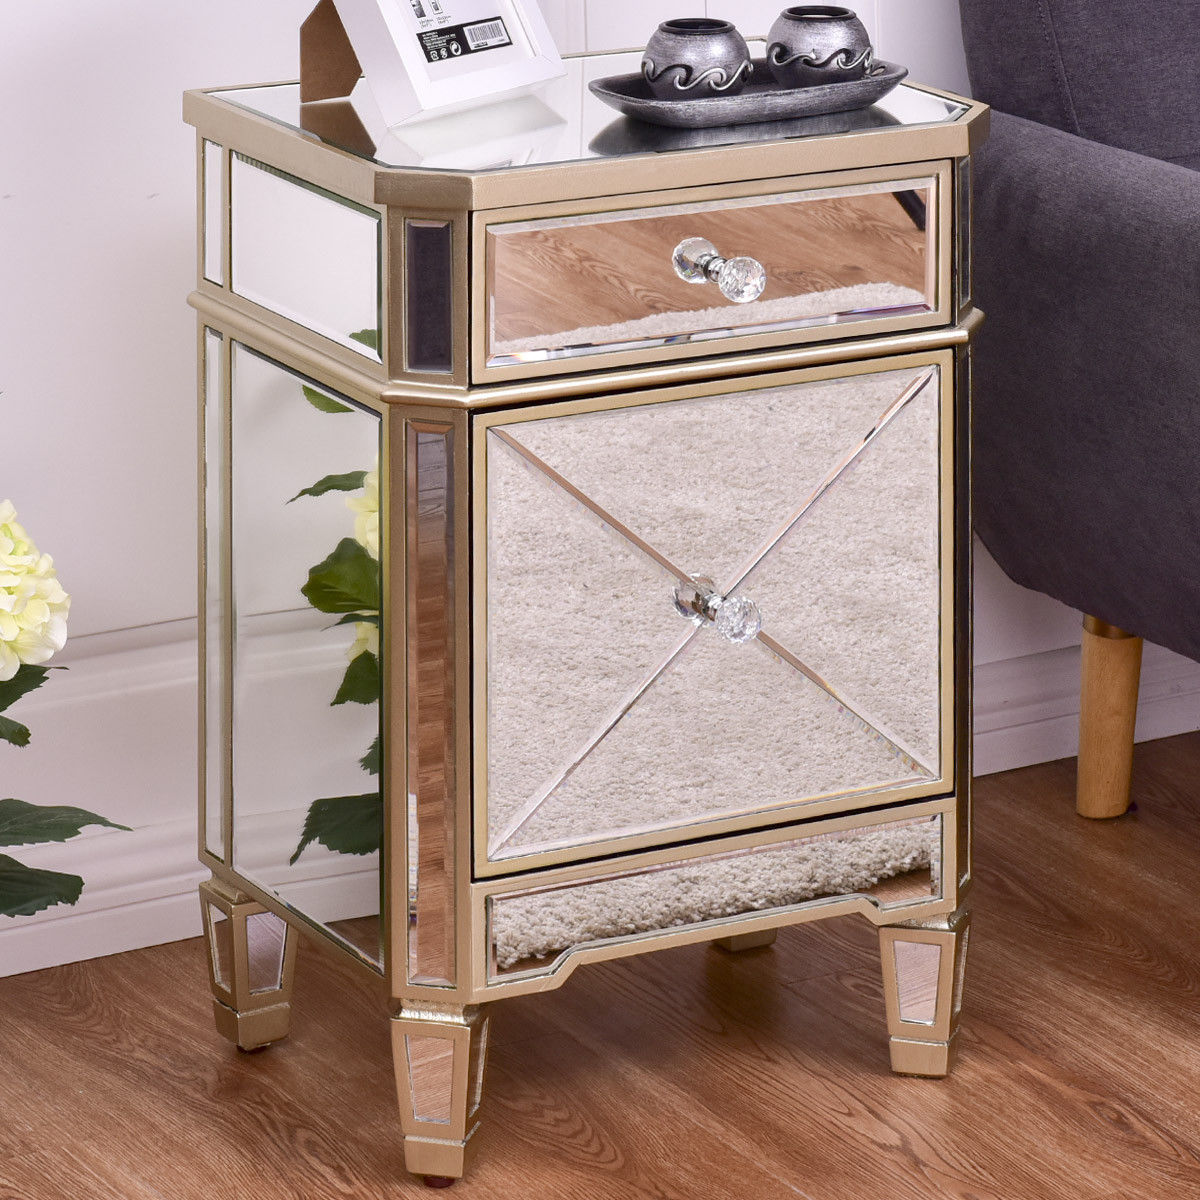 storage metal thresholdtm wicker round silver threshold swivel target accent drum white table patio marble full size antique pedestal narrow console pine wood furniture plant